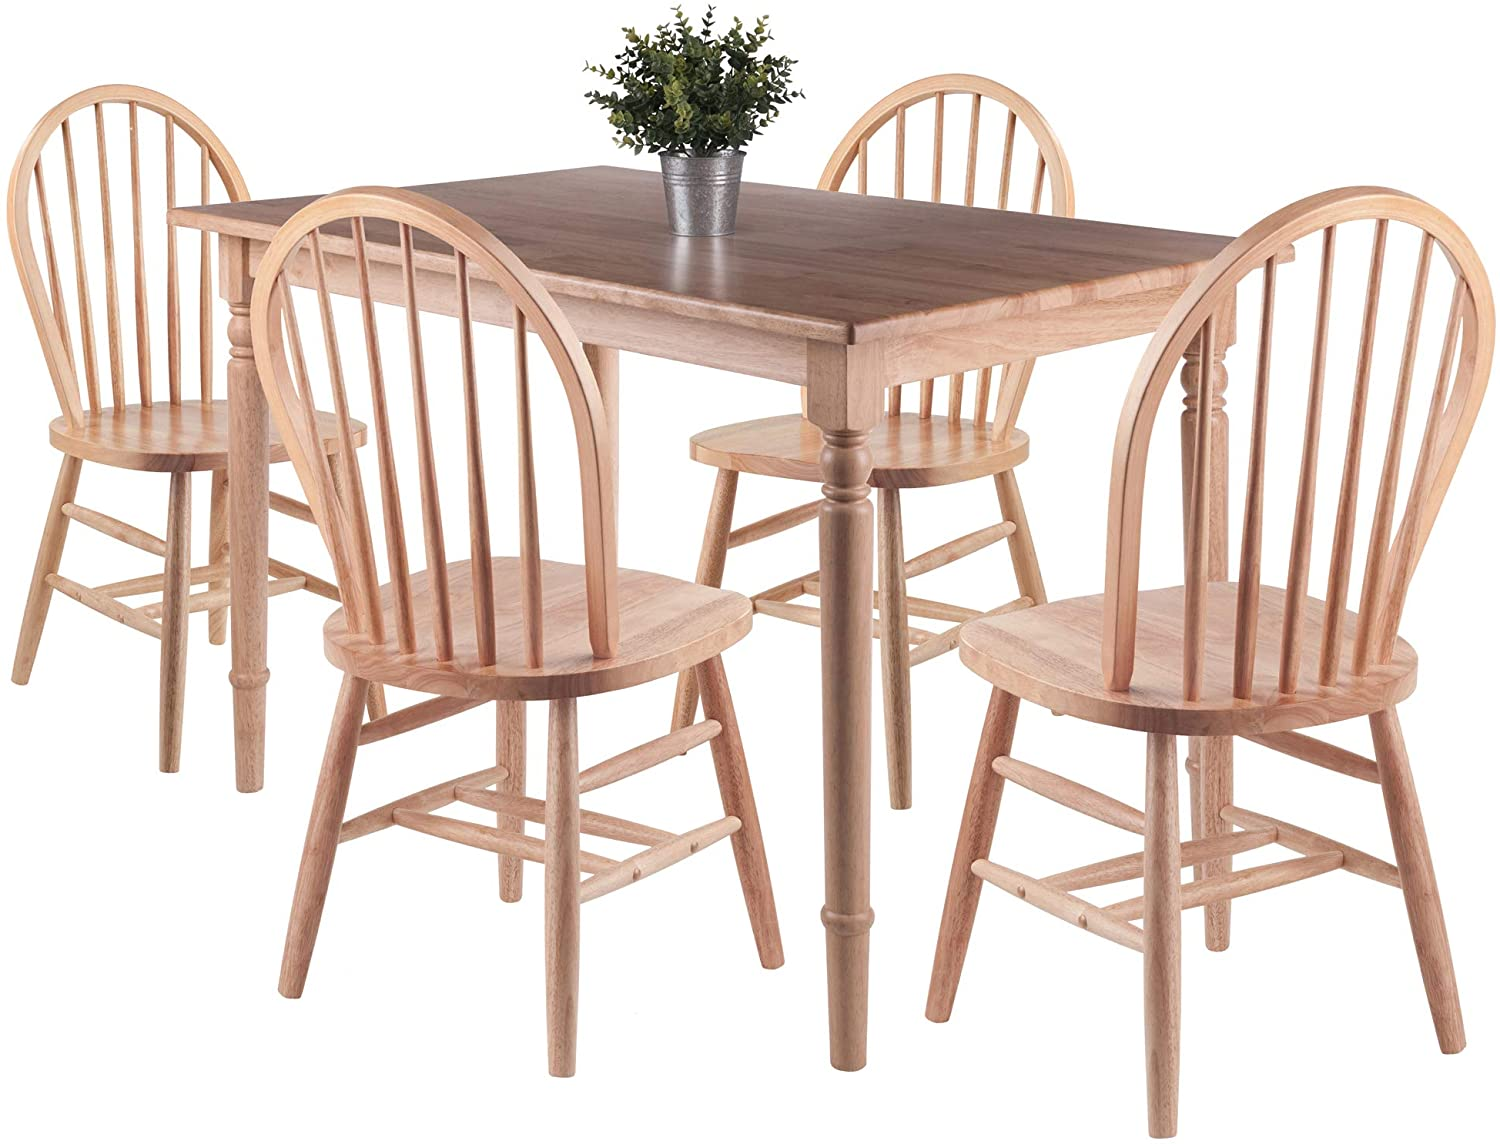 Ravenna 5pc Dining Table with Windsor Chairs - Pot Racks Plus